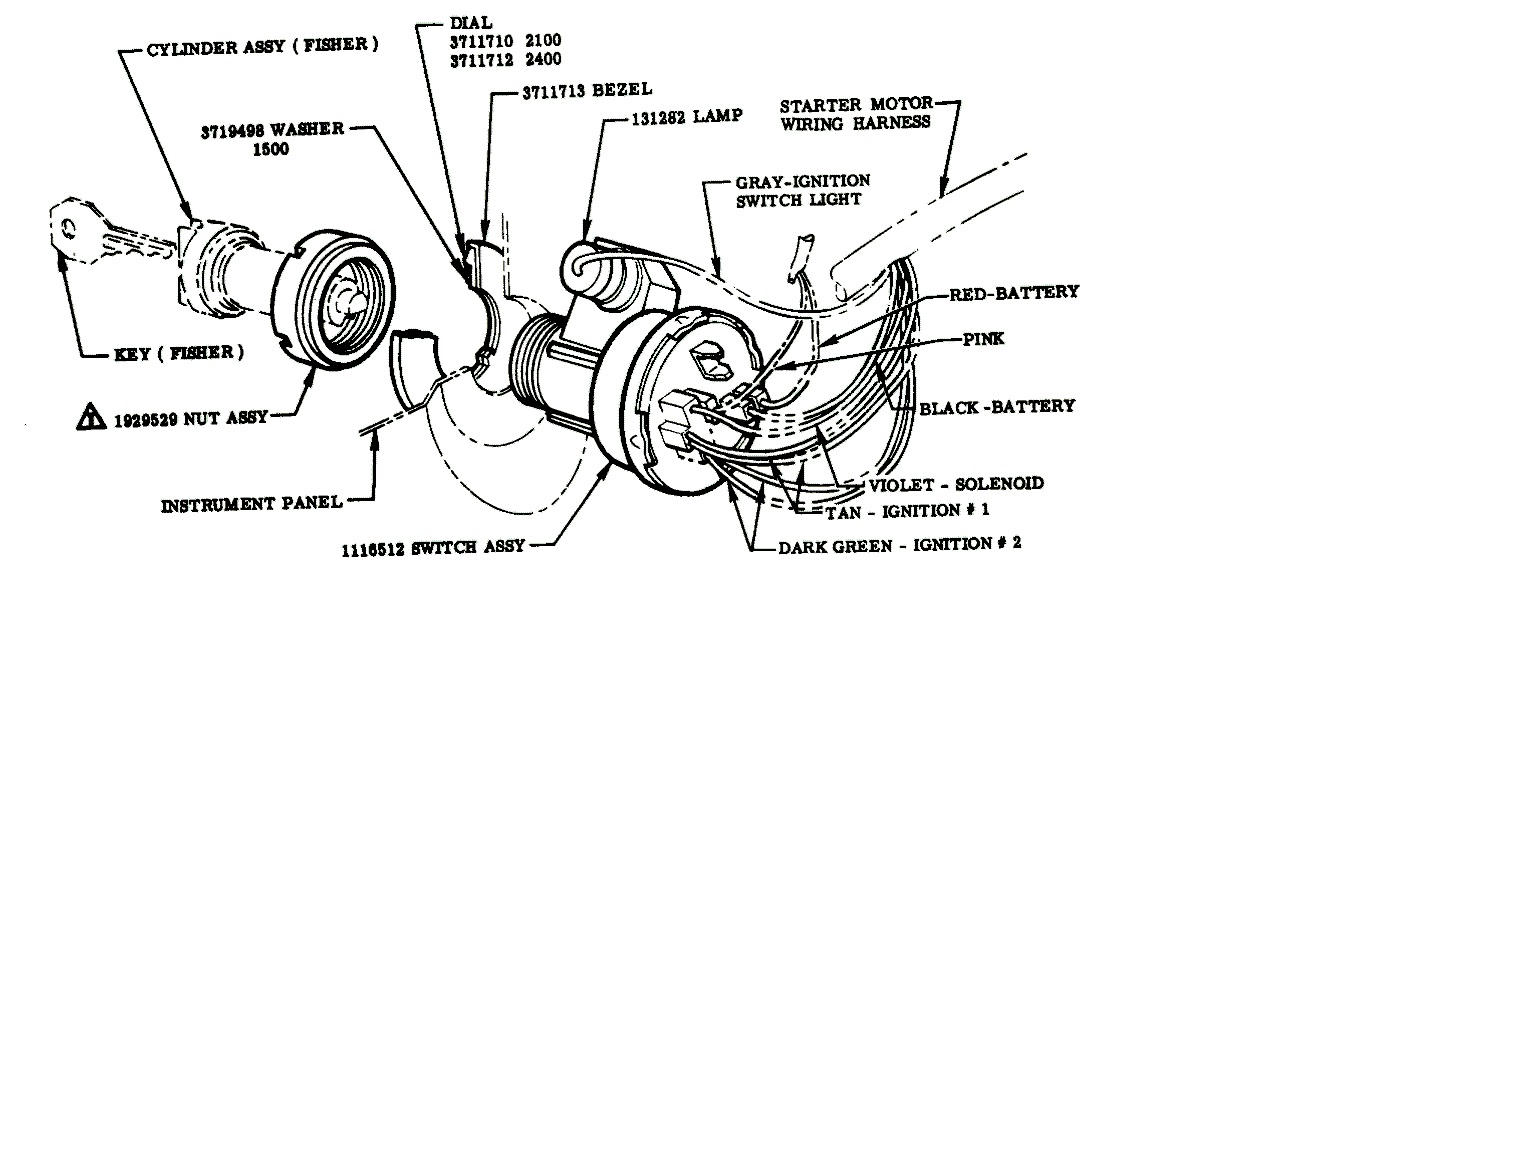 56 Chevy 3100 Wiring Diagram Library. 56 Chev Headlight Dimmer Switch Wiring Trusted Diagram Rh Dafpods Co 1956 Chevy. GM. 73 GM Column Wiring Diagram Painless At Scoala.co